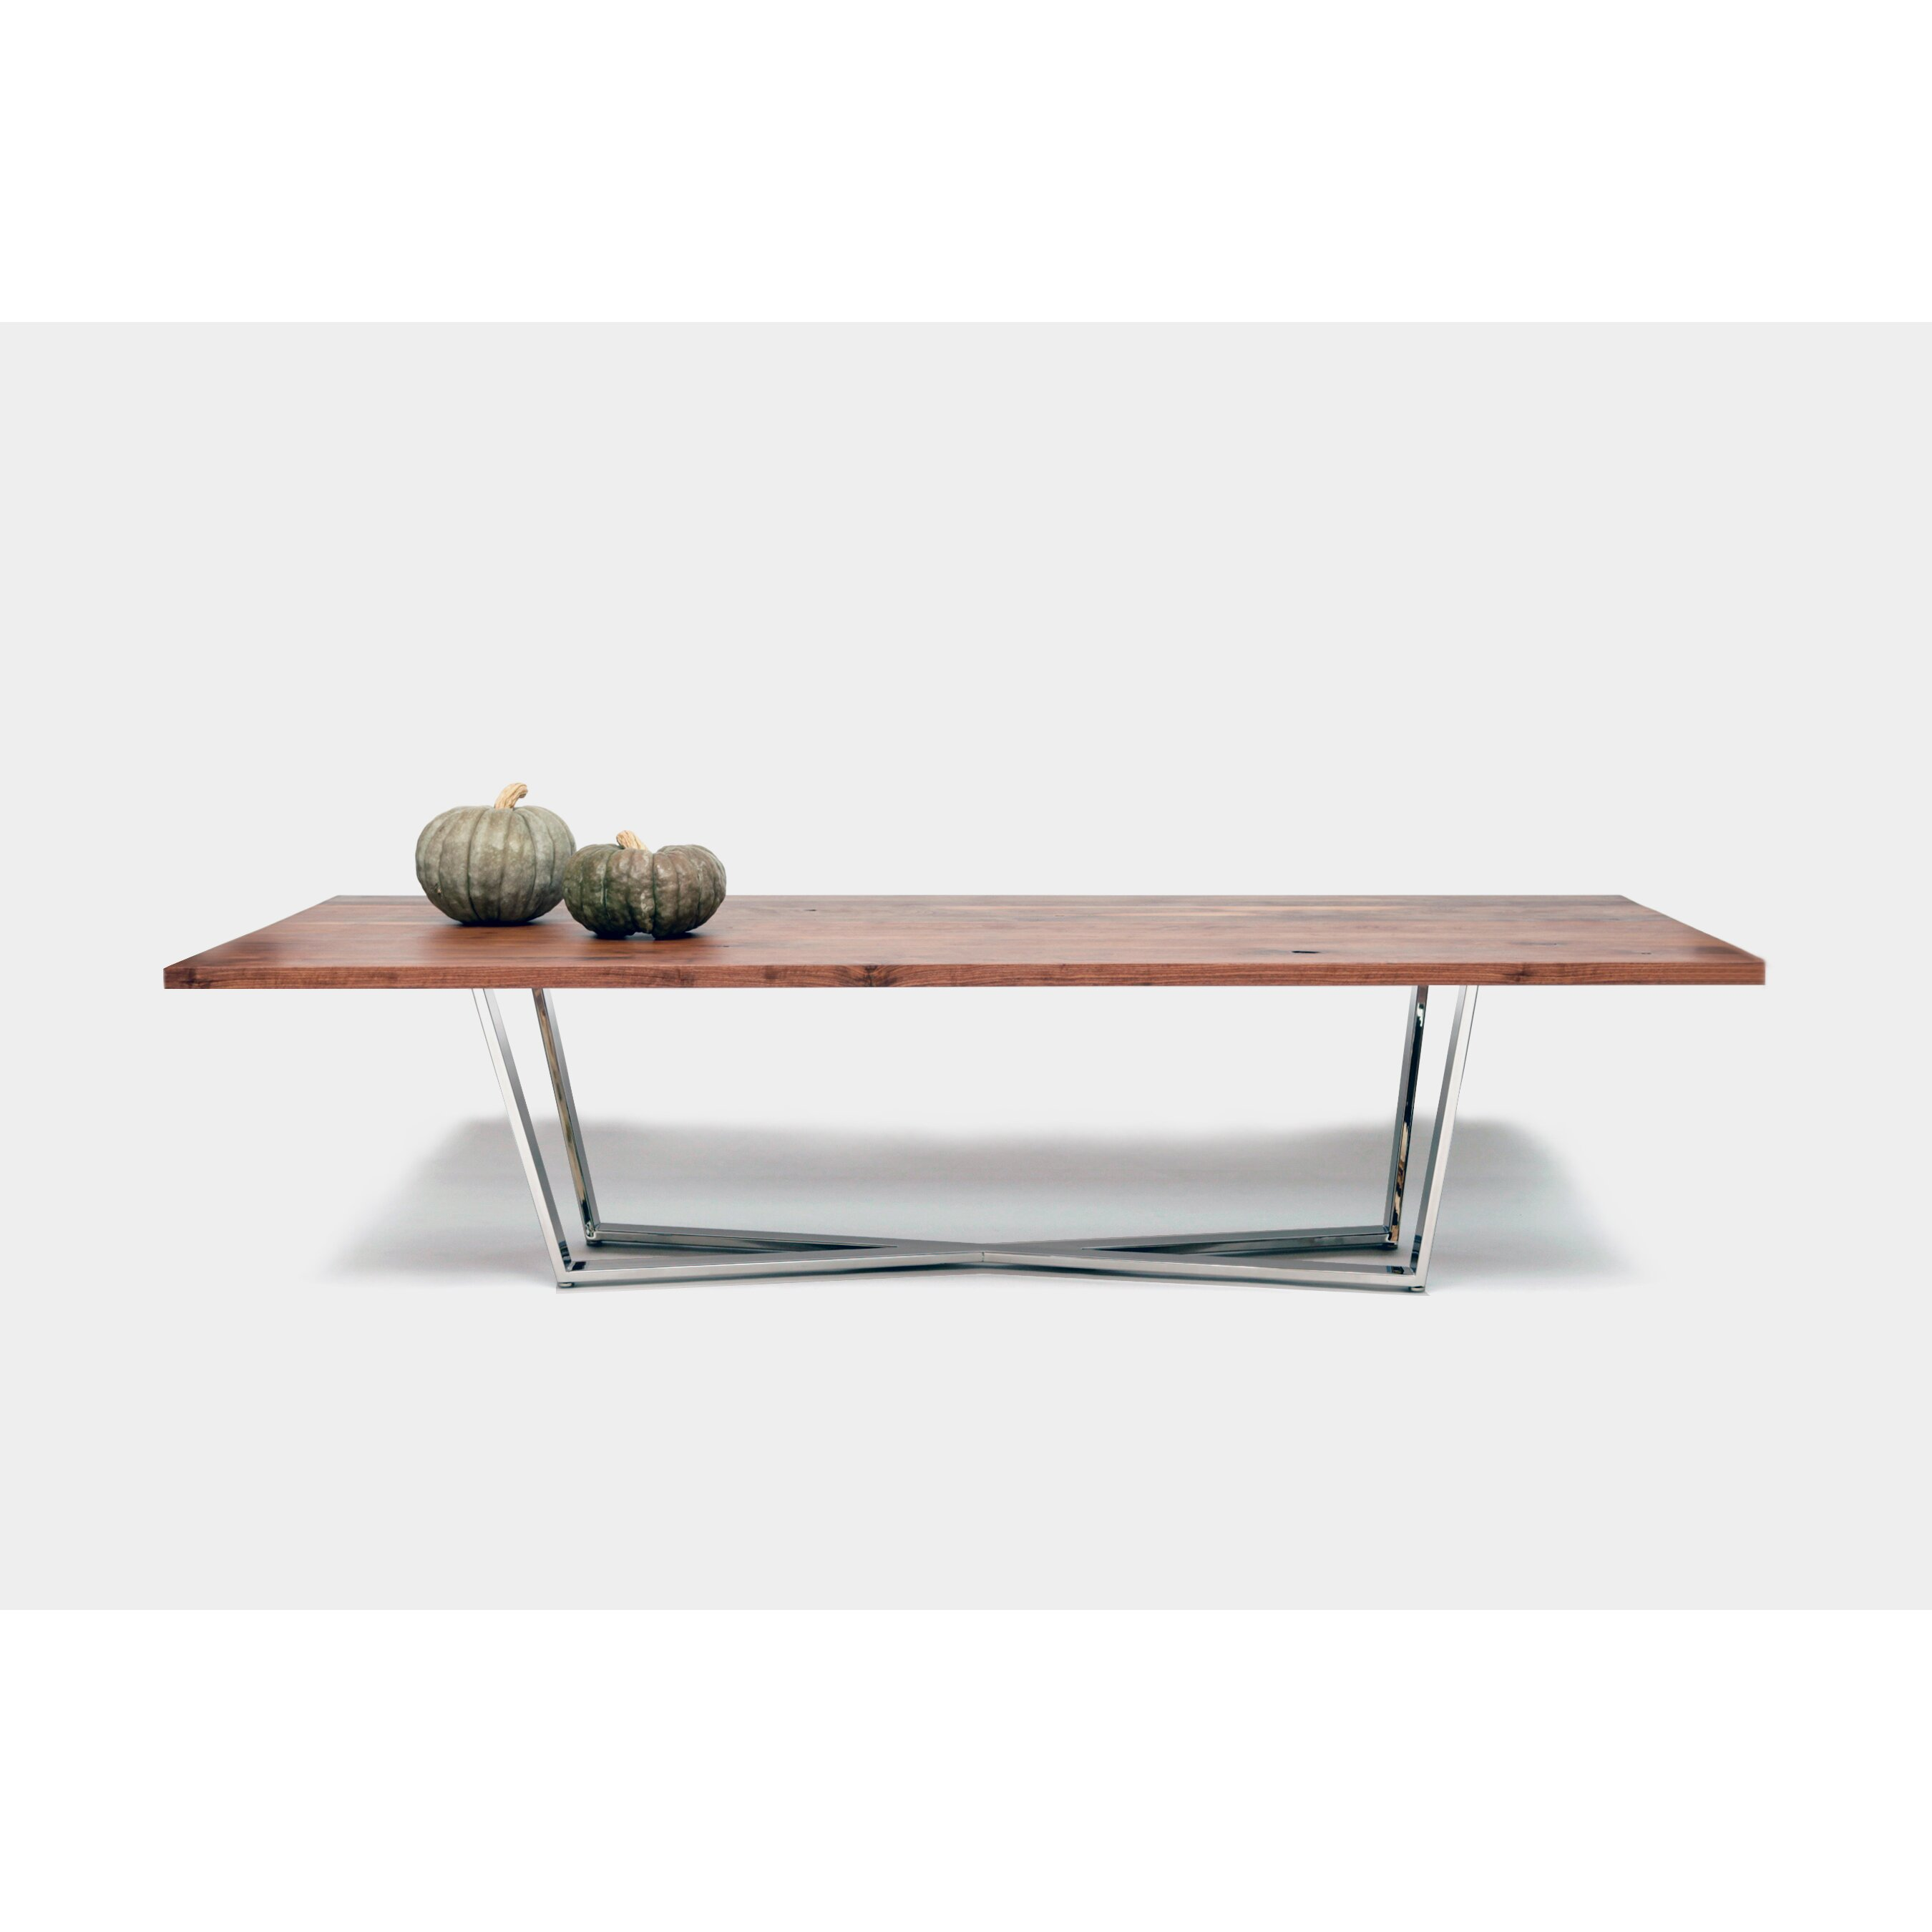 Artless gax x dining table reviews for Table x reviews